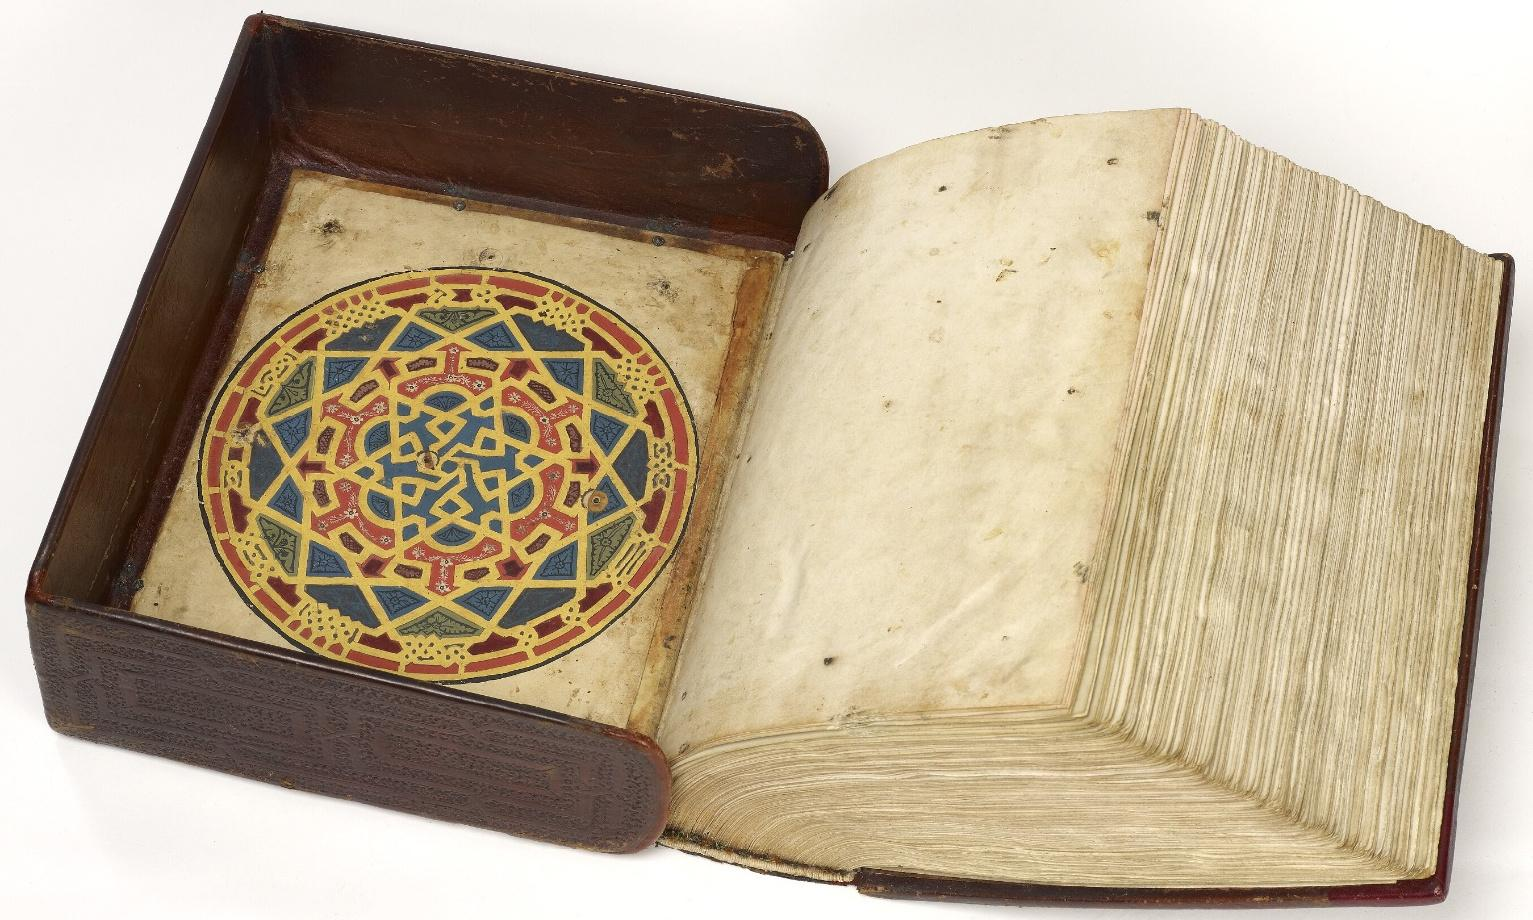 500 years after the expulsion of Spain's Jews, medieval Bible comes home